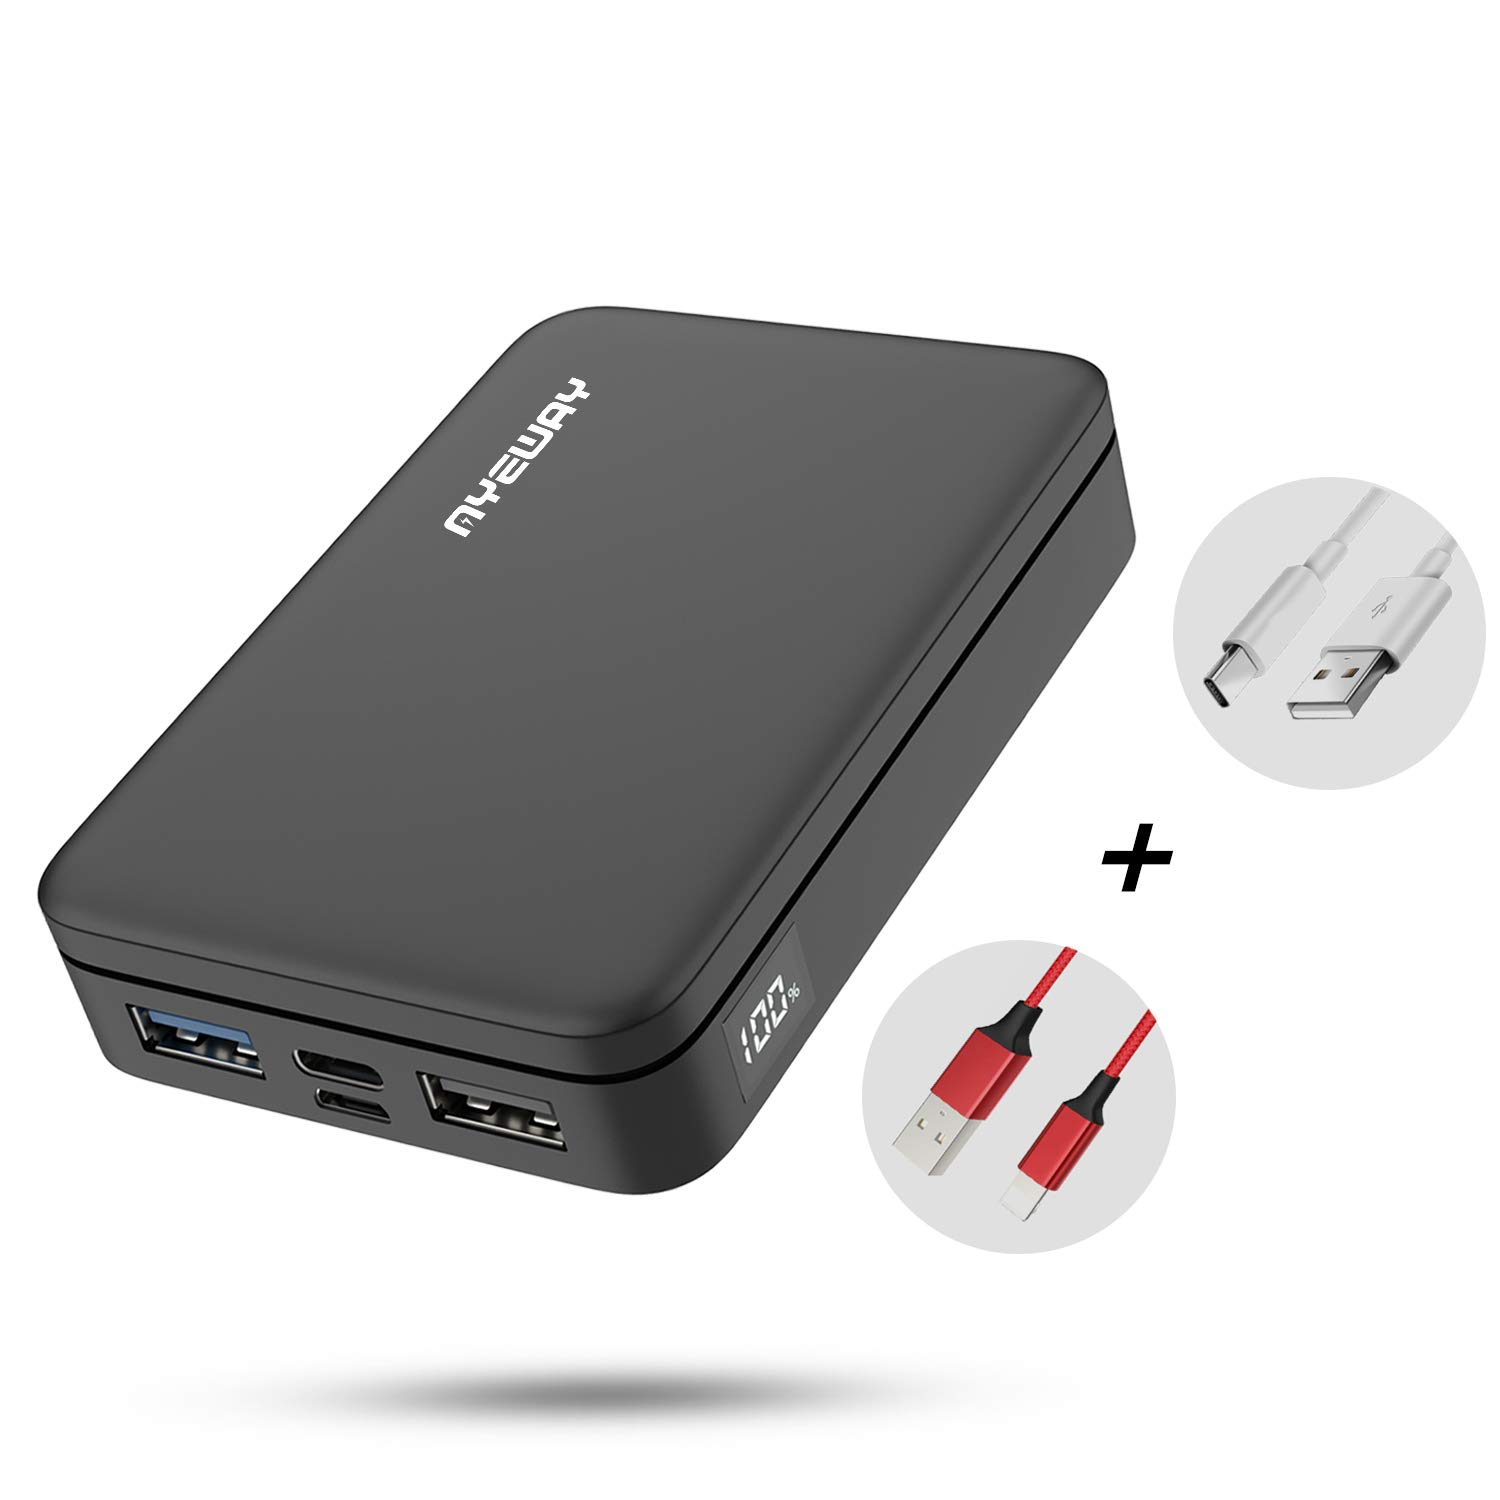 Power Bank 10000mAh Portable Charger with Dual High Speed Charging outputs,External Battery Pack with Visible LCD Screen,Compact Charging Bank Compatible with iPhone,Samsung Galaxy,ipad and More. by Ayeway